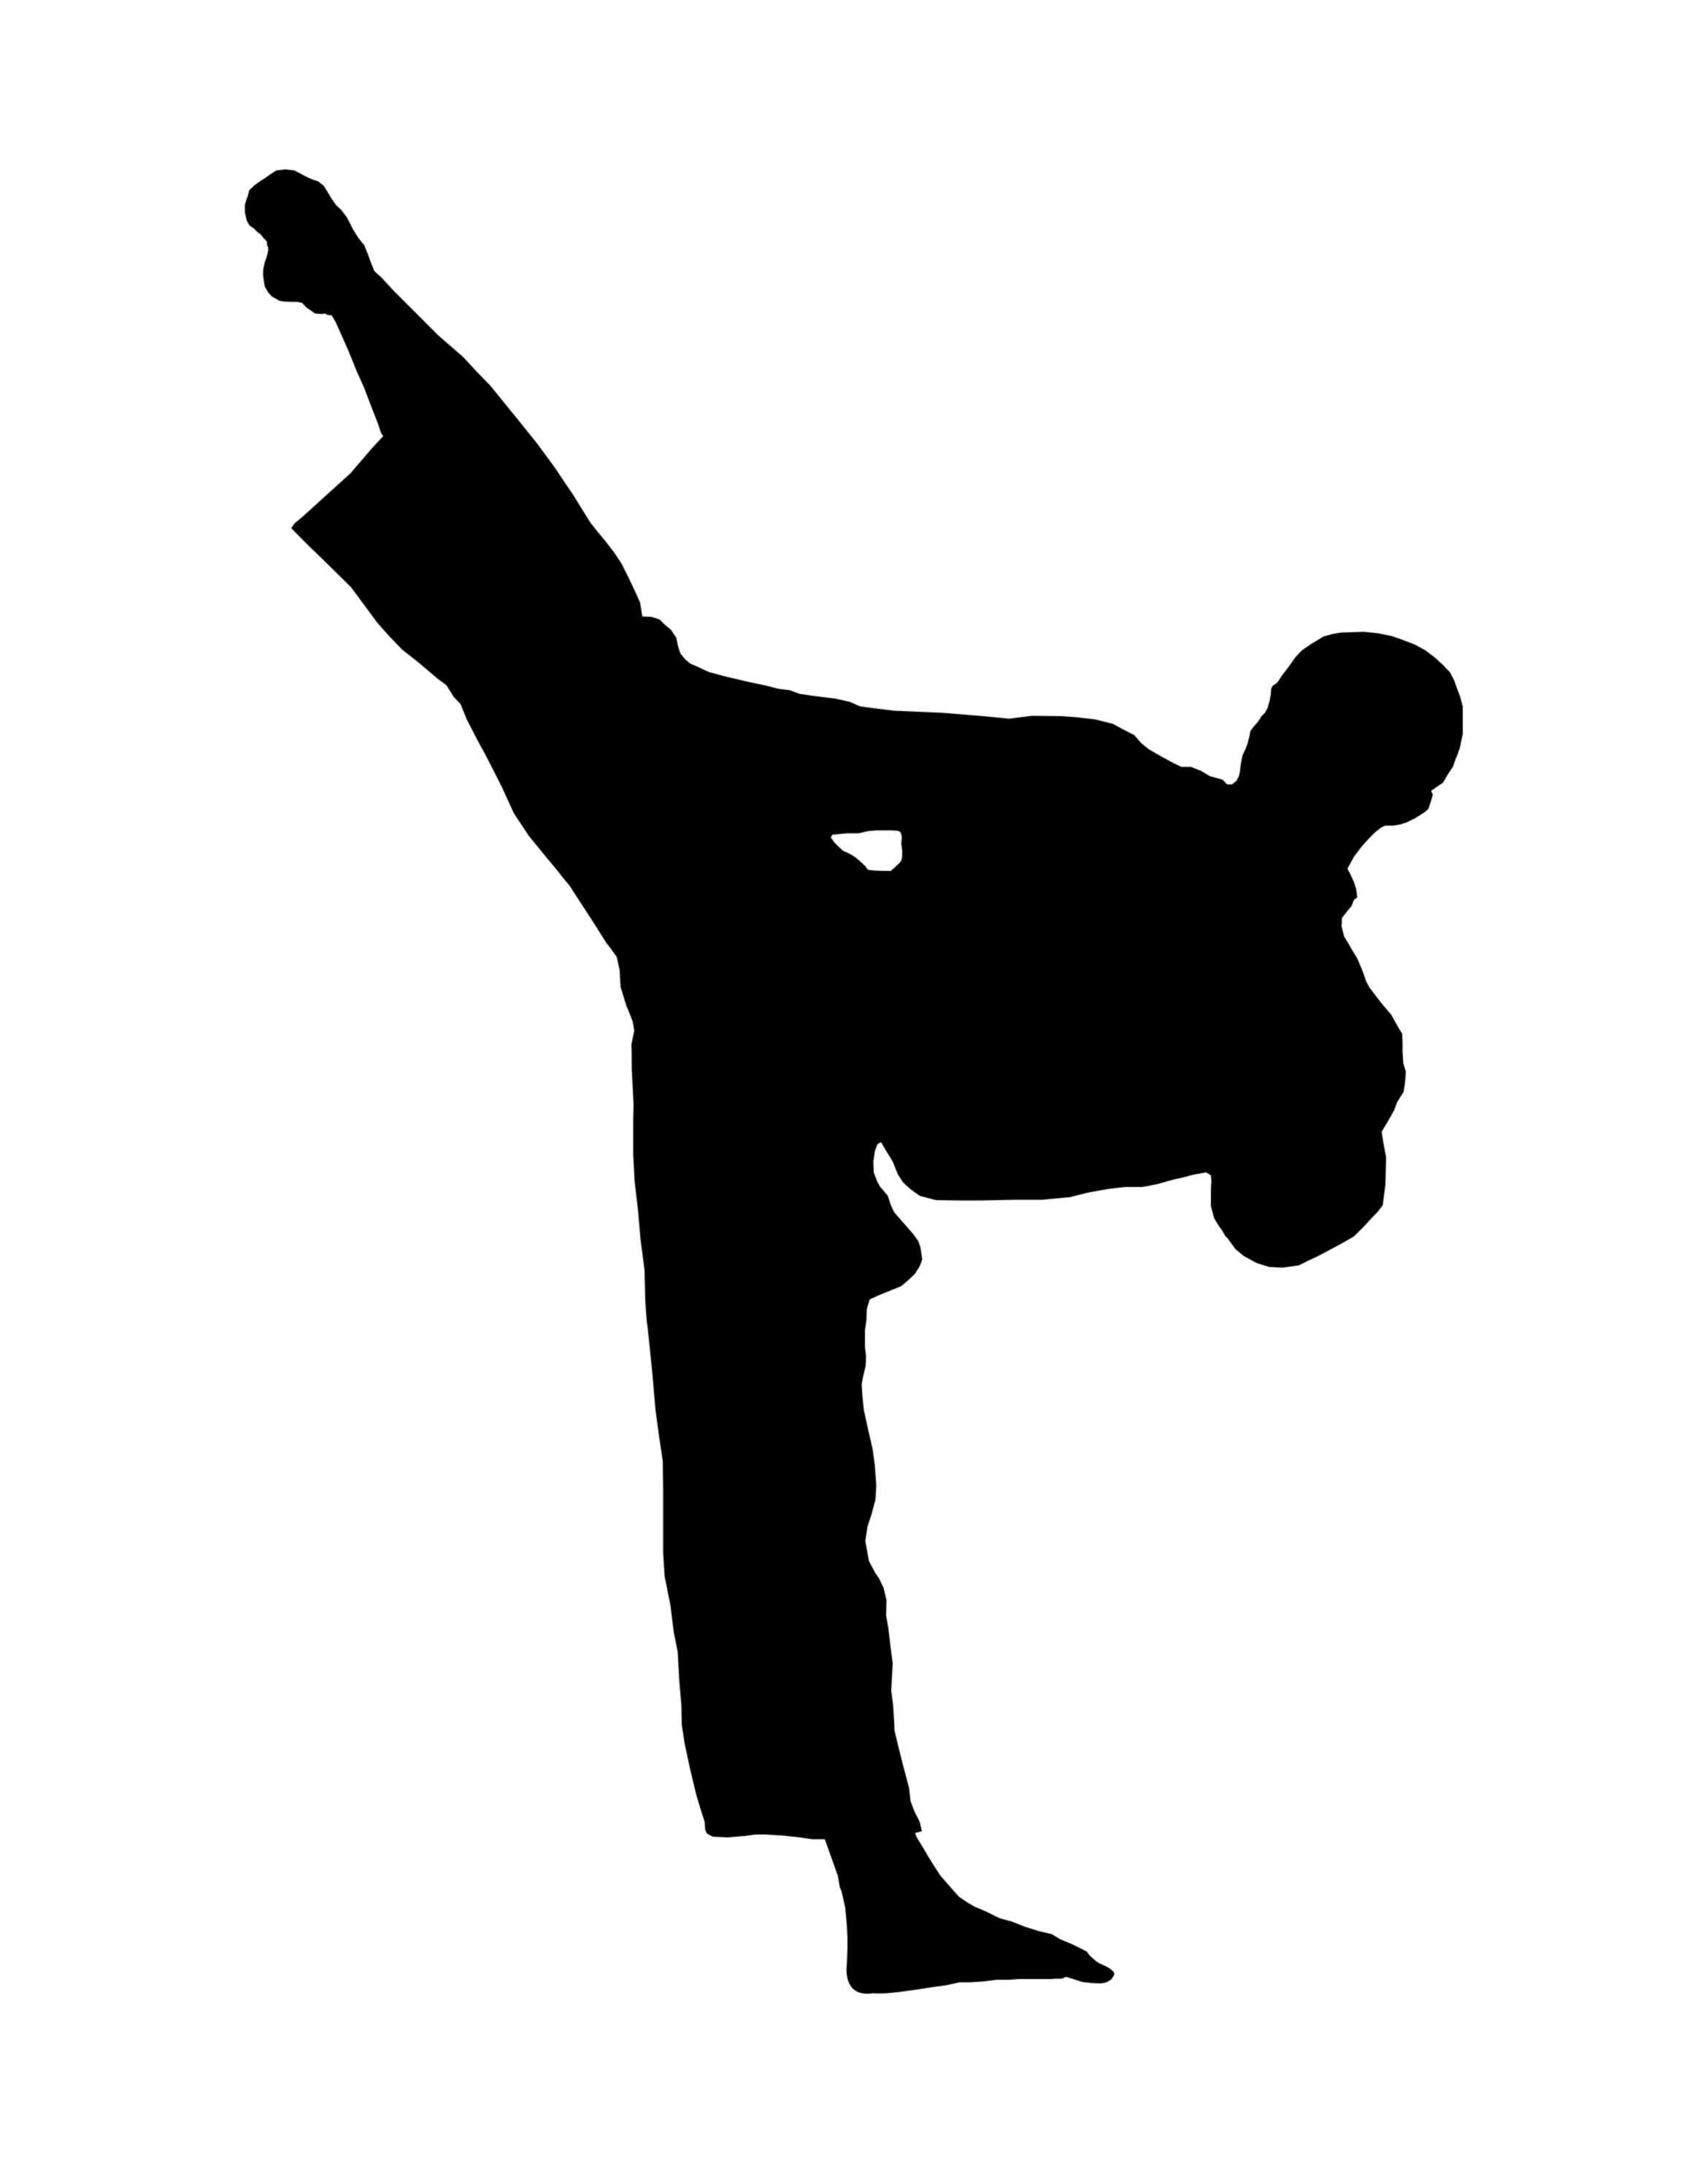 Best Martial Arts Studios In The Inland Empire